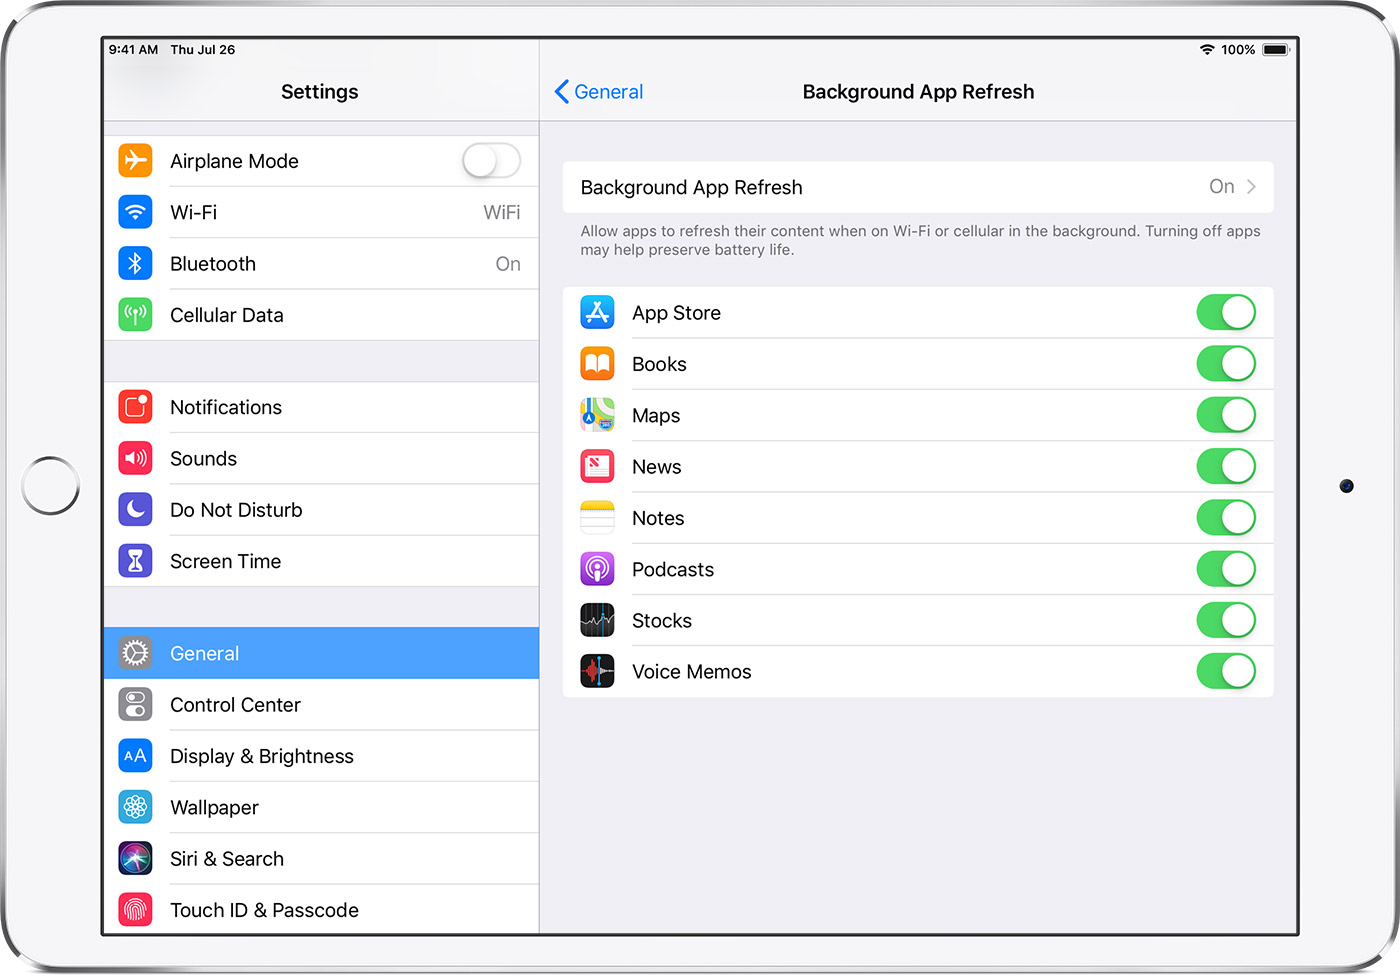 Background App Refresh settings